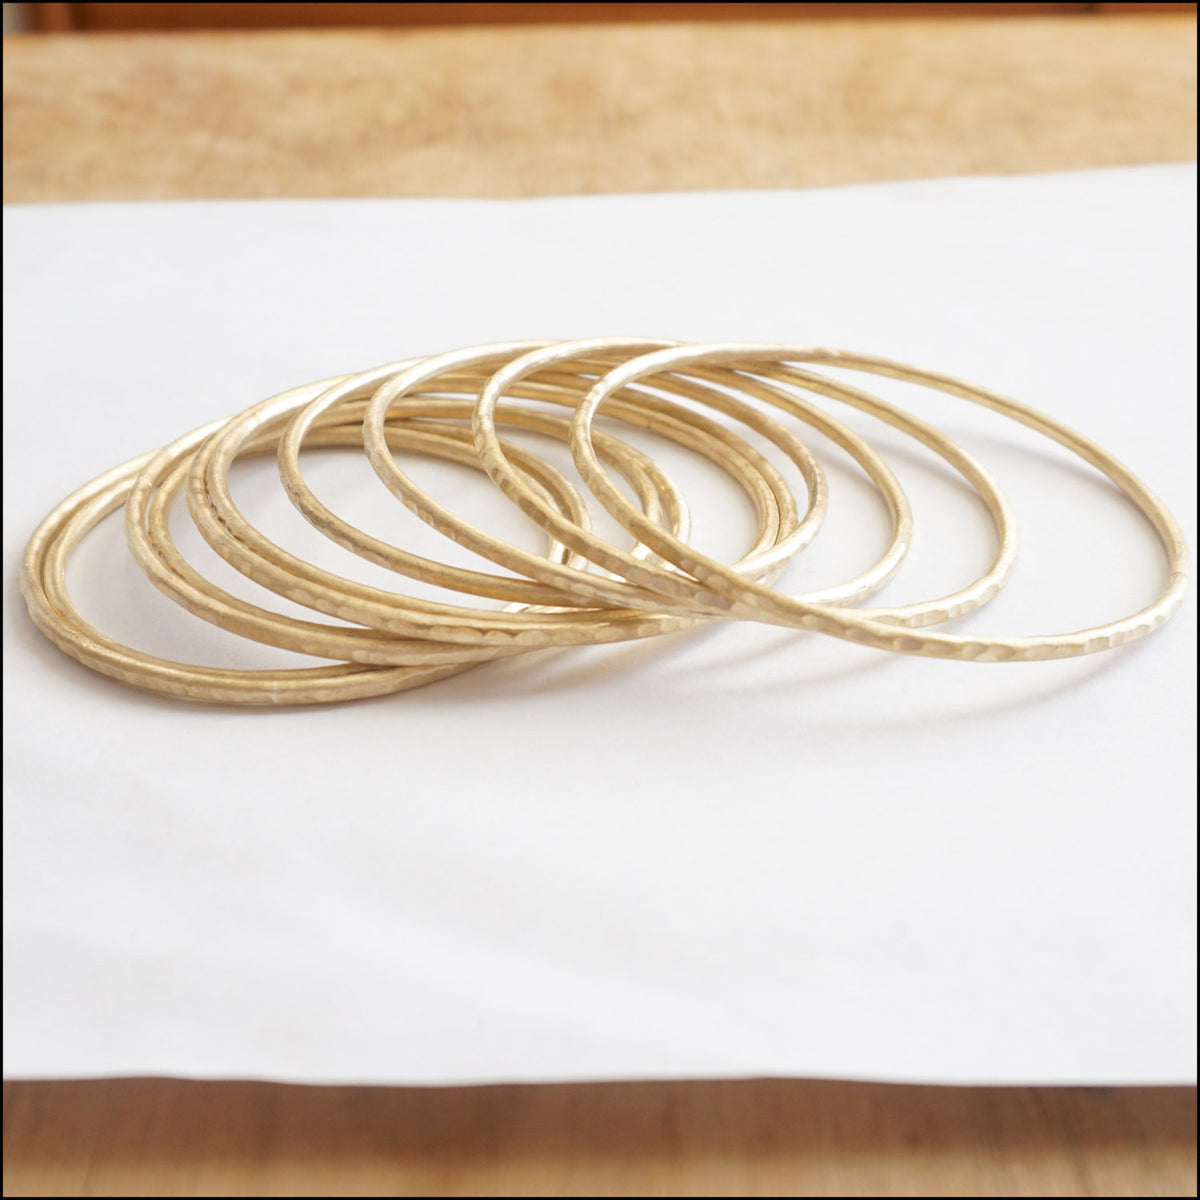 Classic Bohemian Bangle Bracelets, Hand-Made and Hand Textured - 0210 - Virginia Wynne Designs